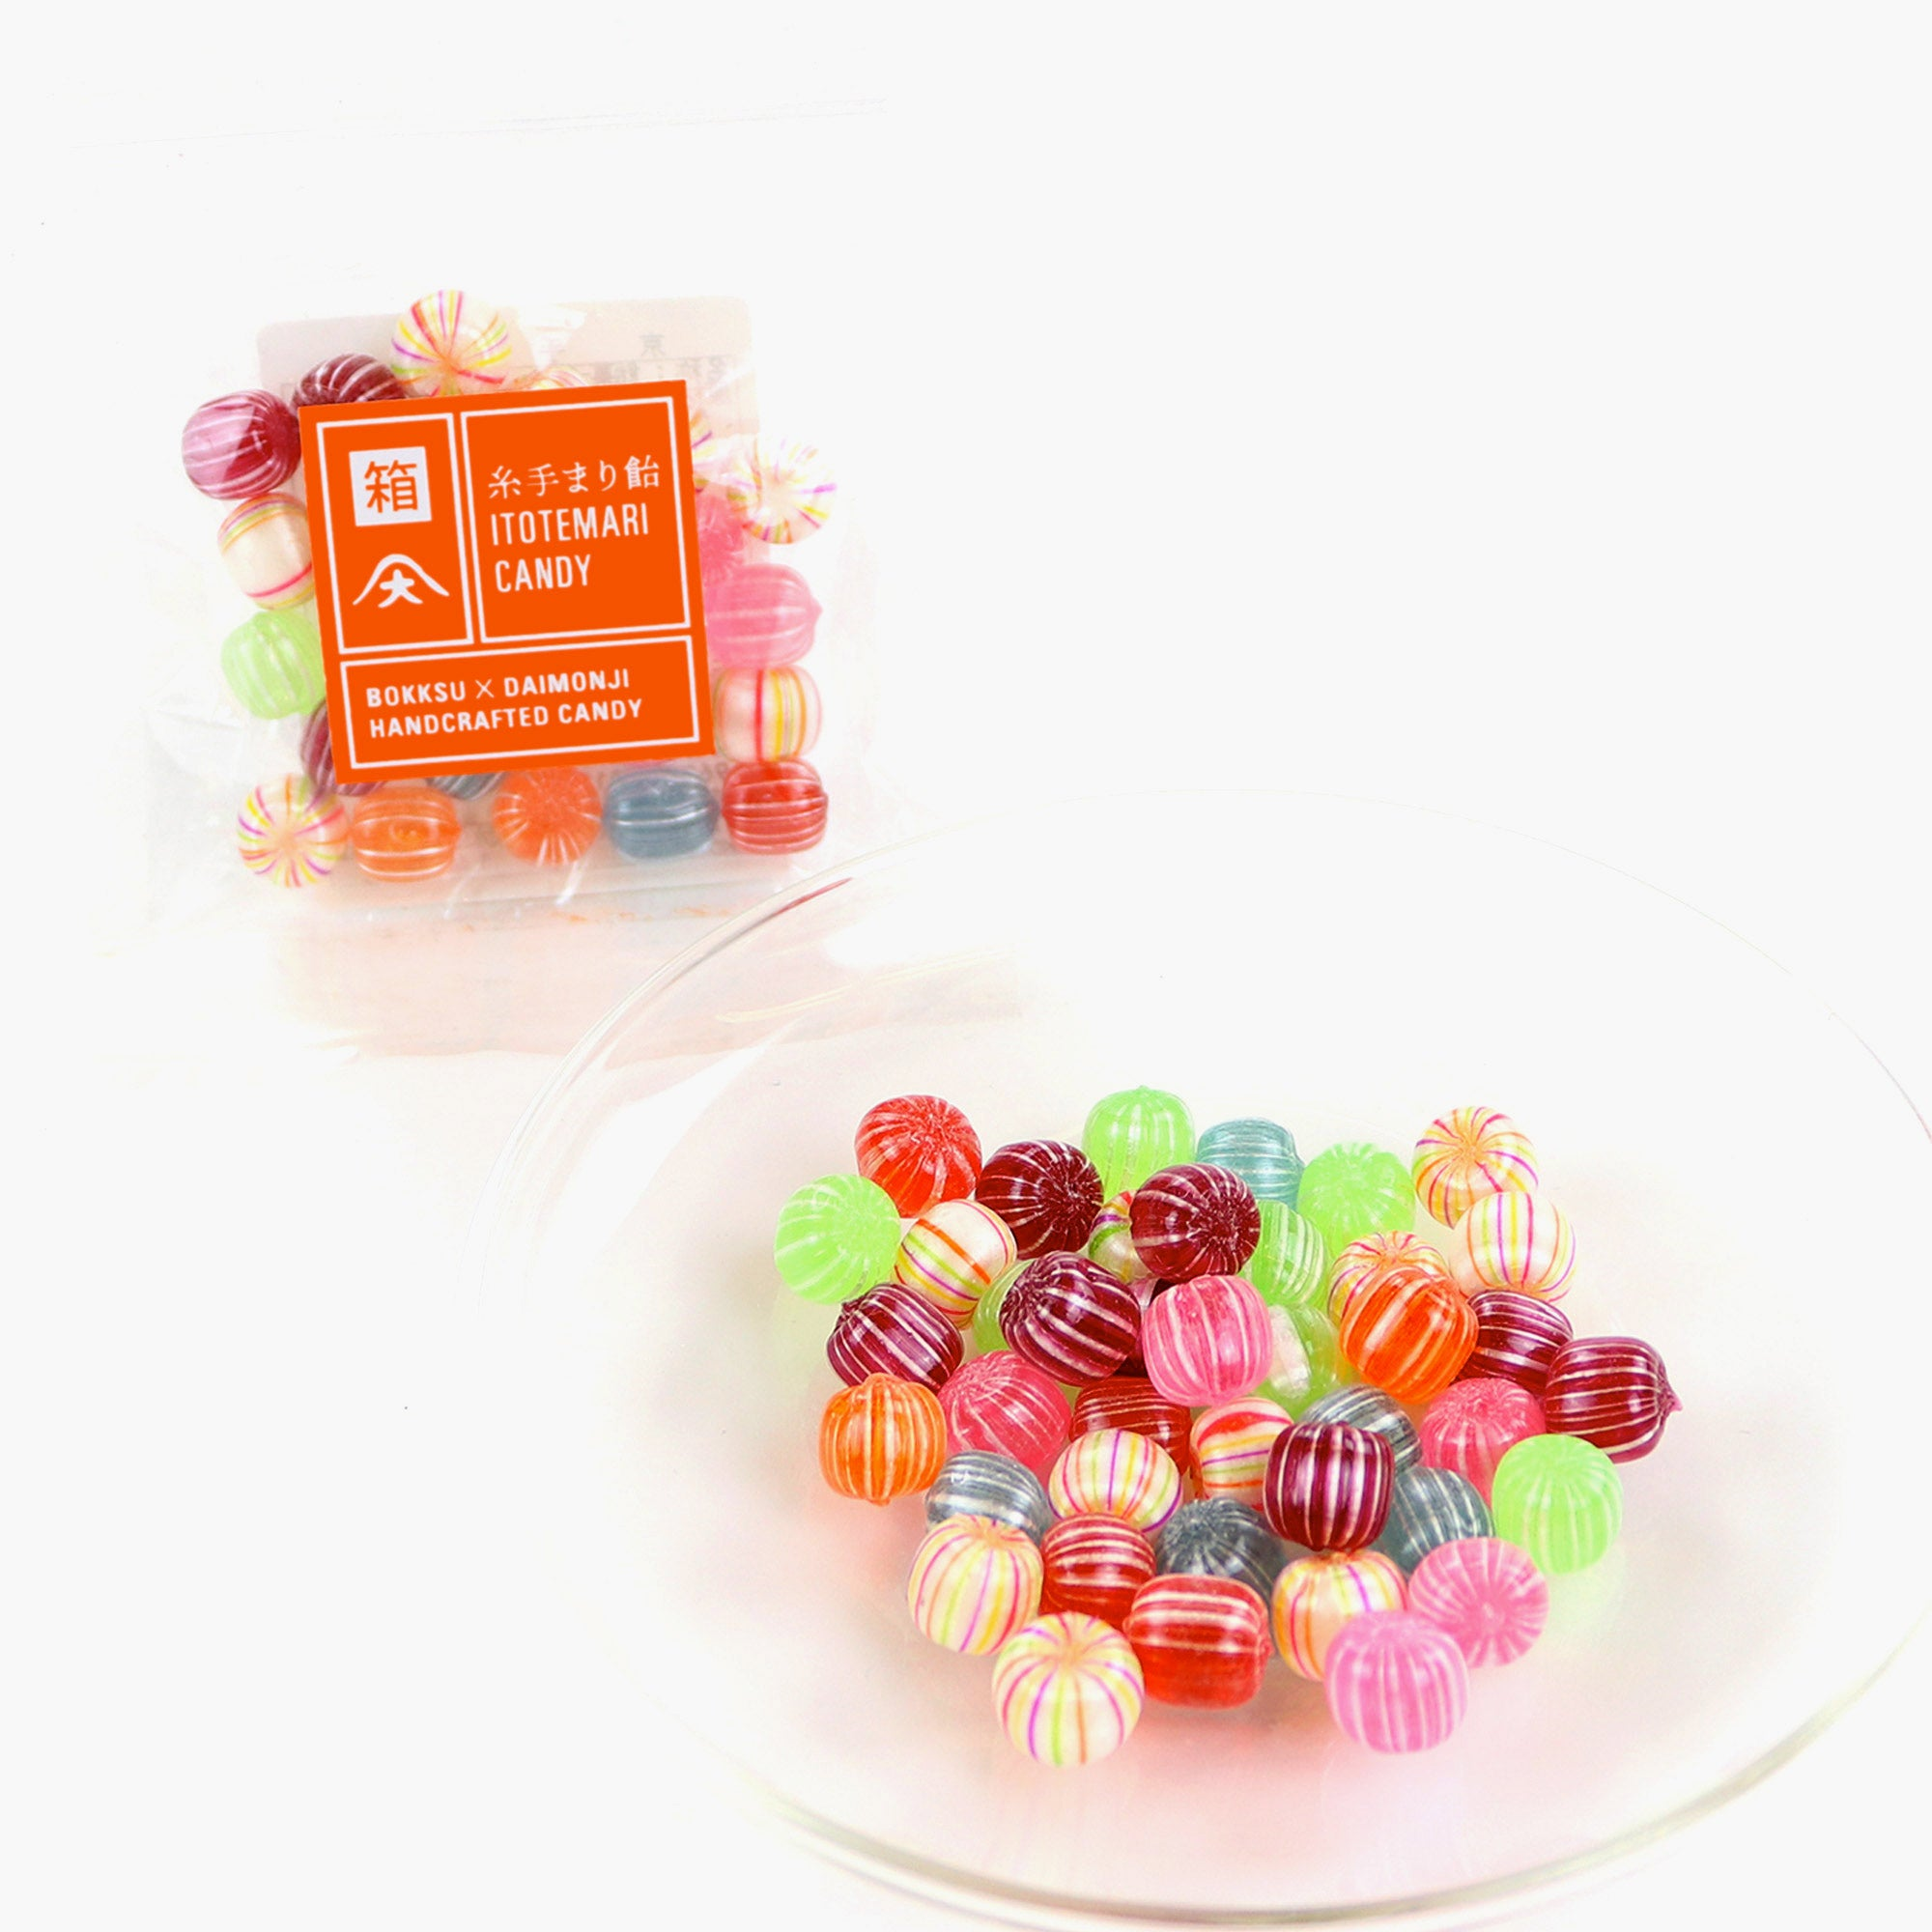 Handmade Itotemari Candy Mix (1 Bag)